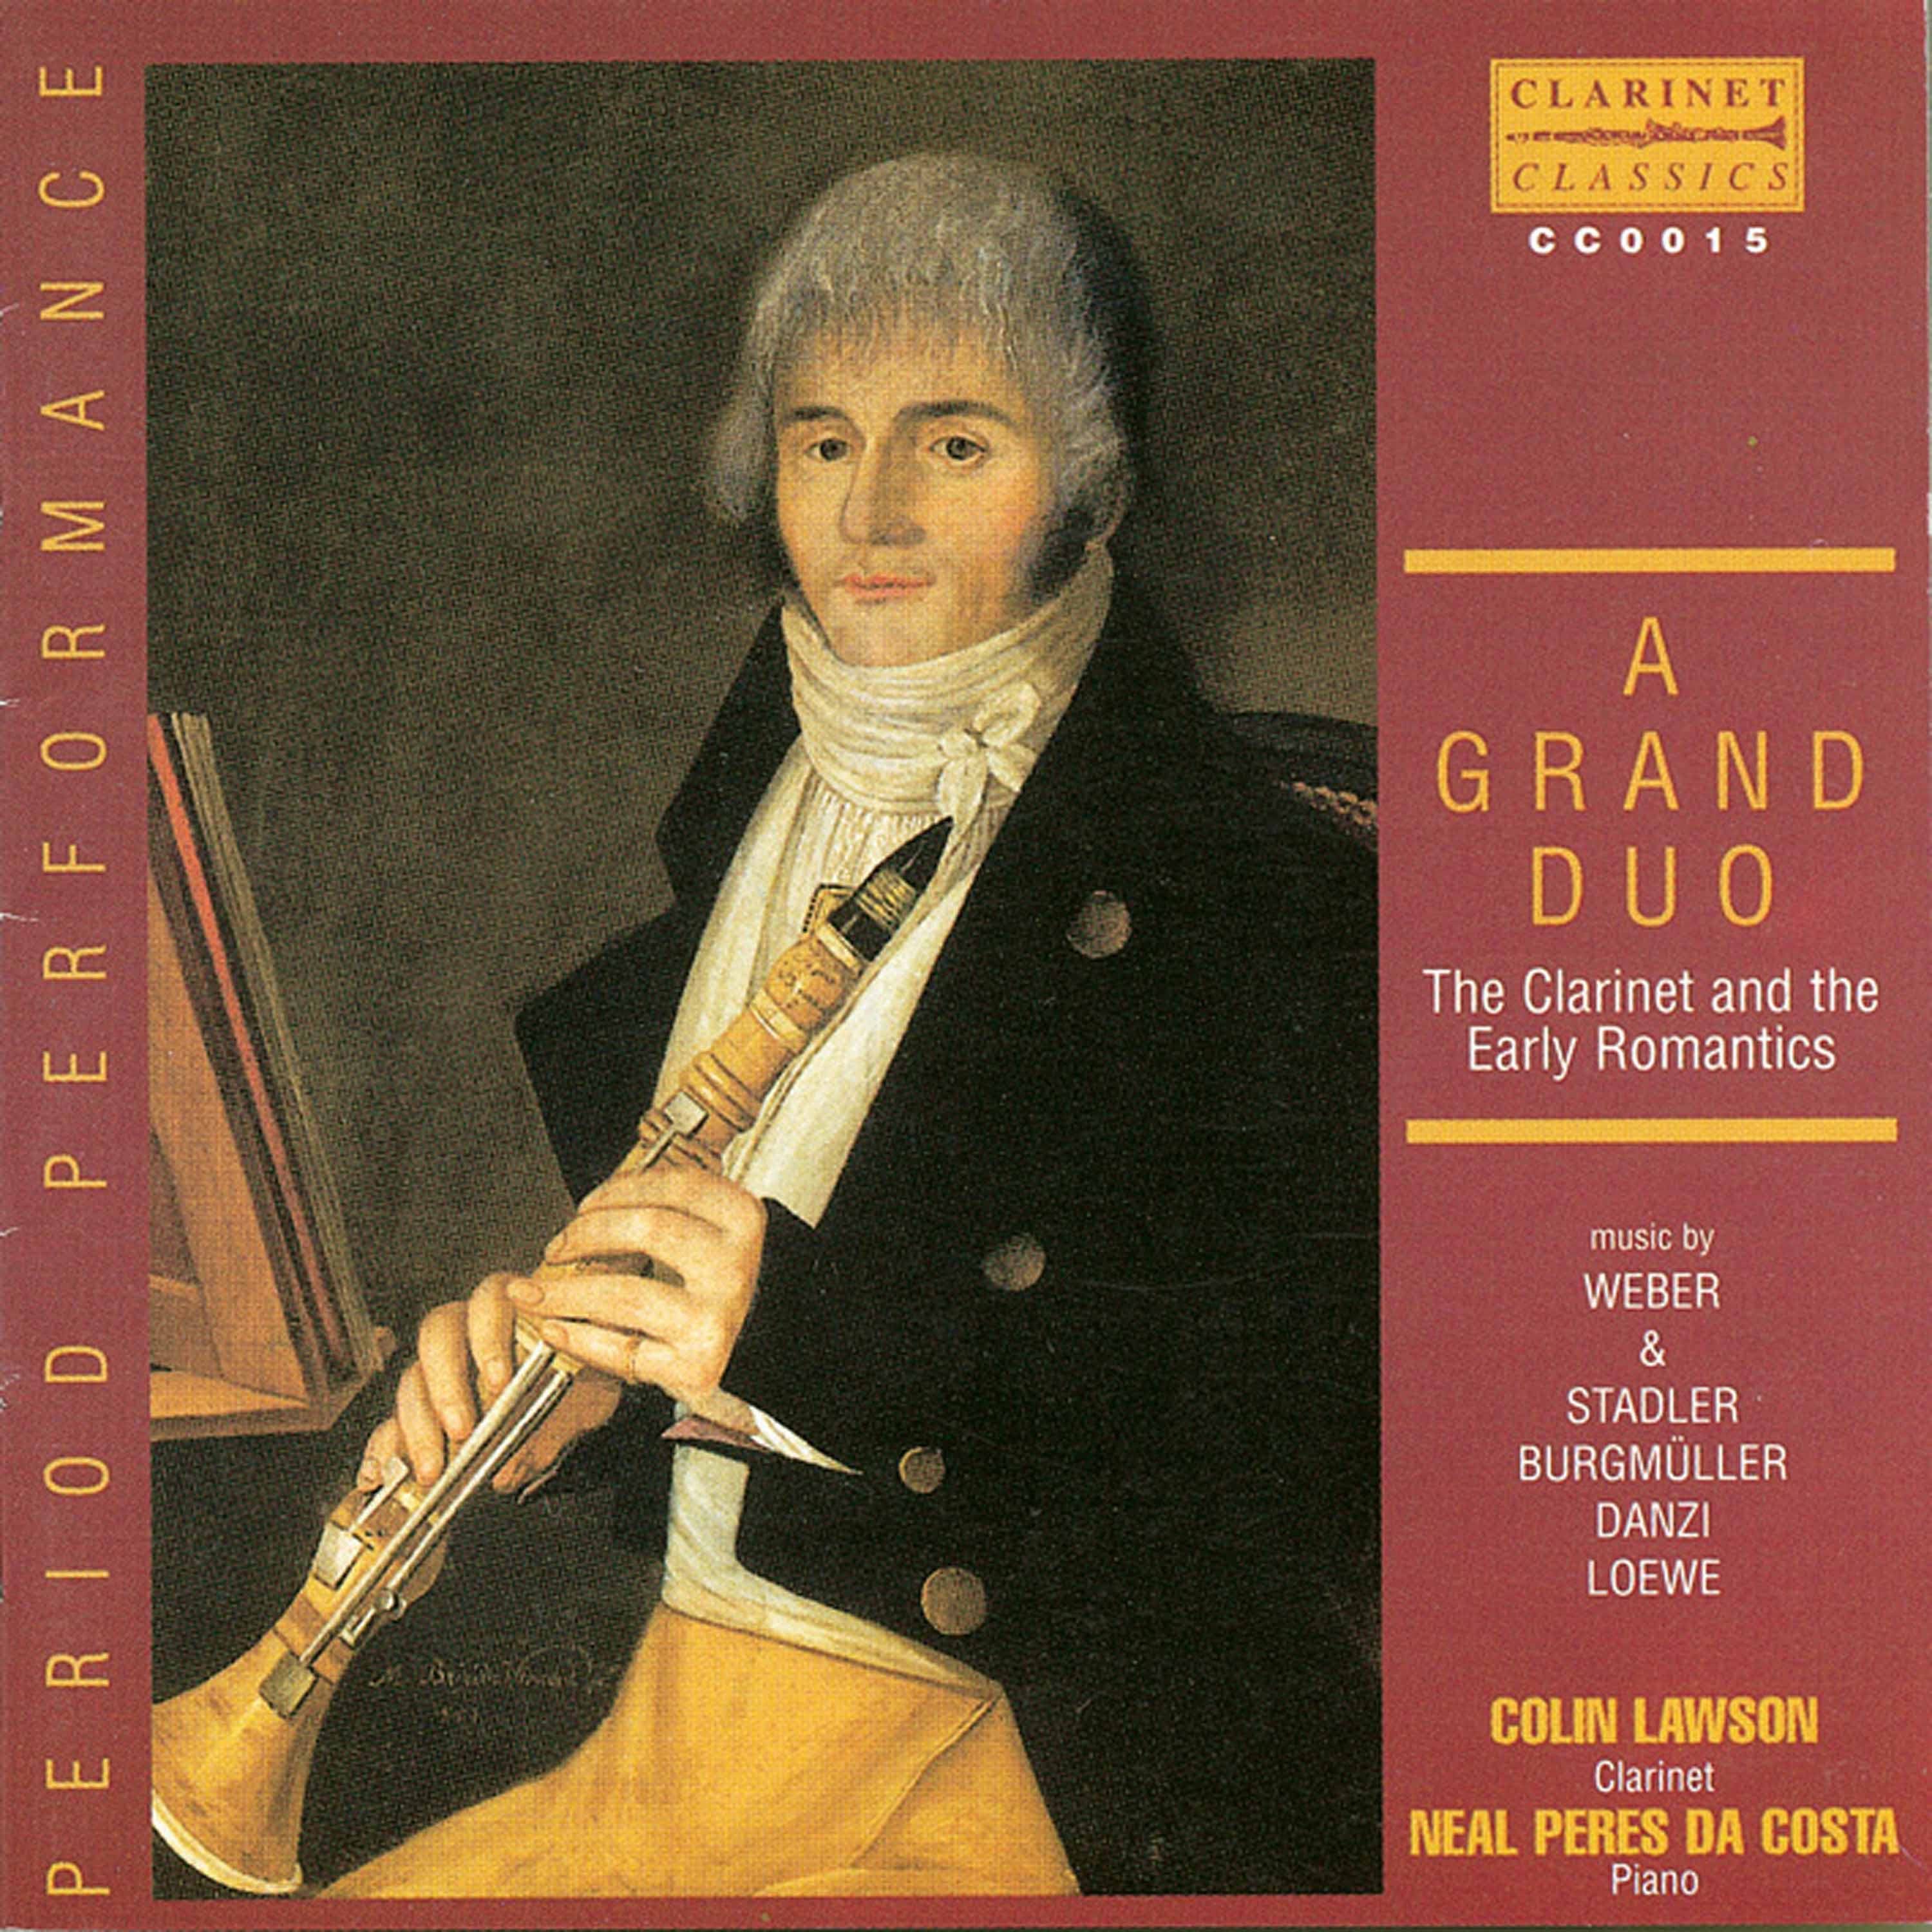 A Grand Duo: The Clarinet and the Early Romantics